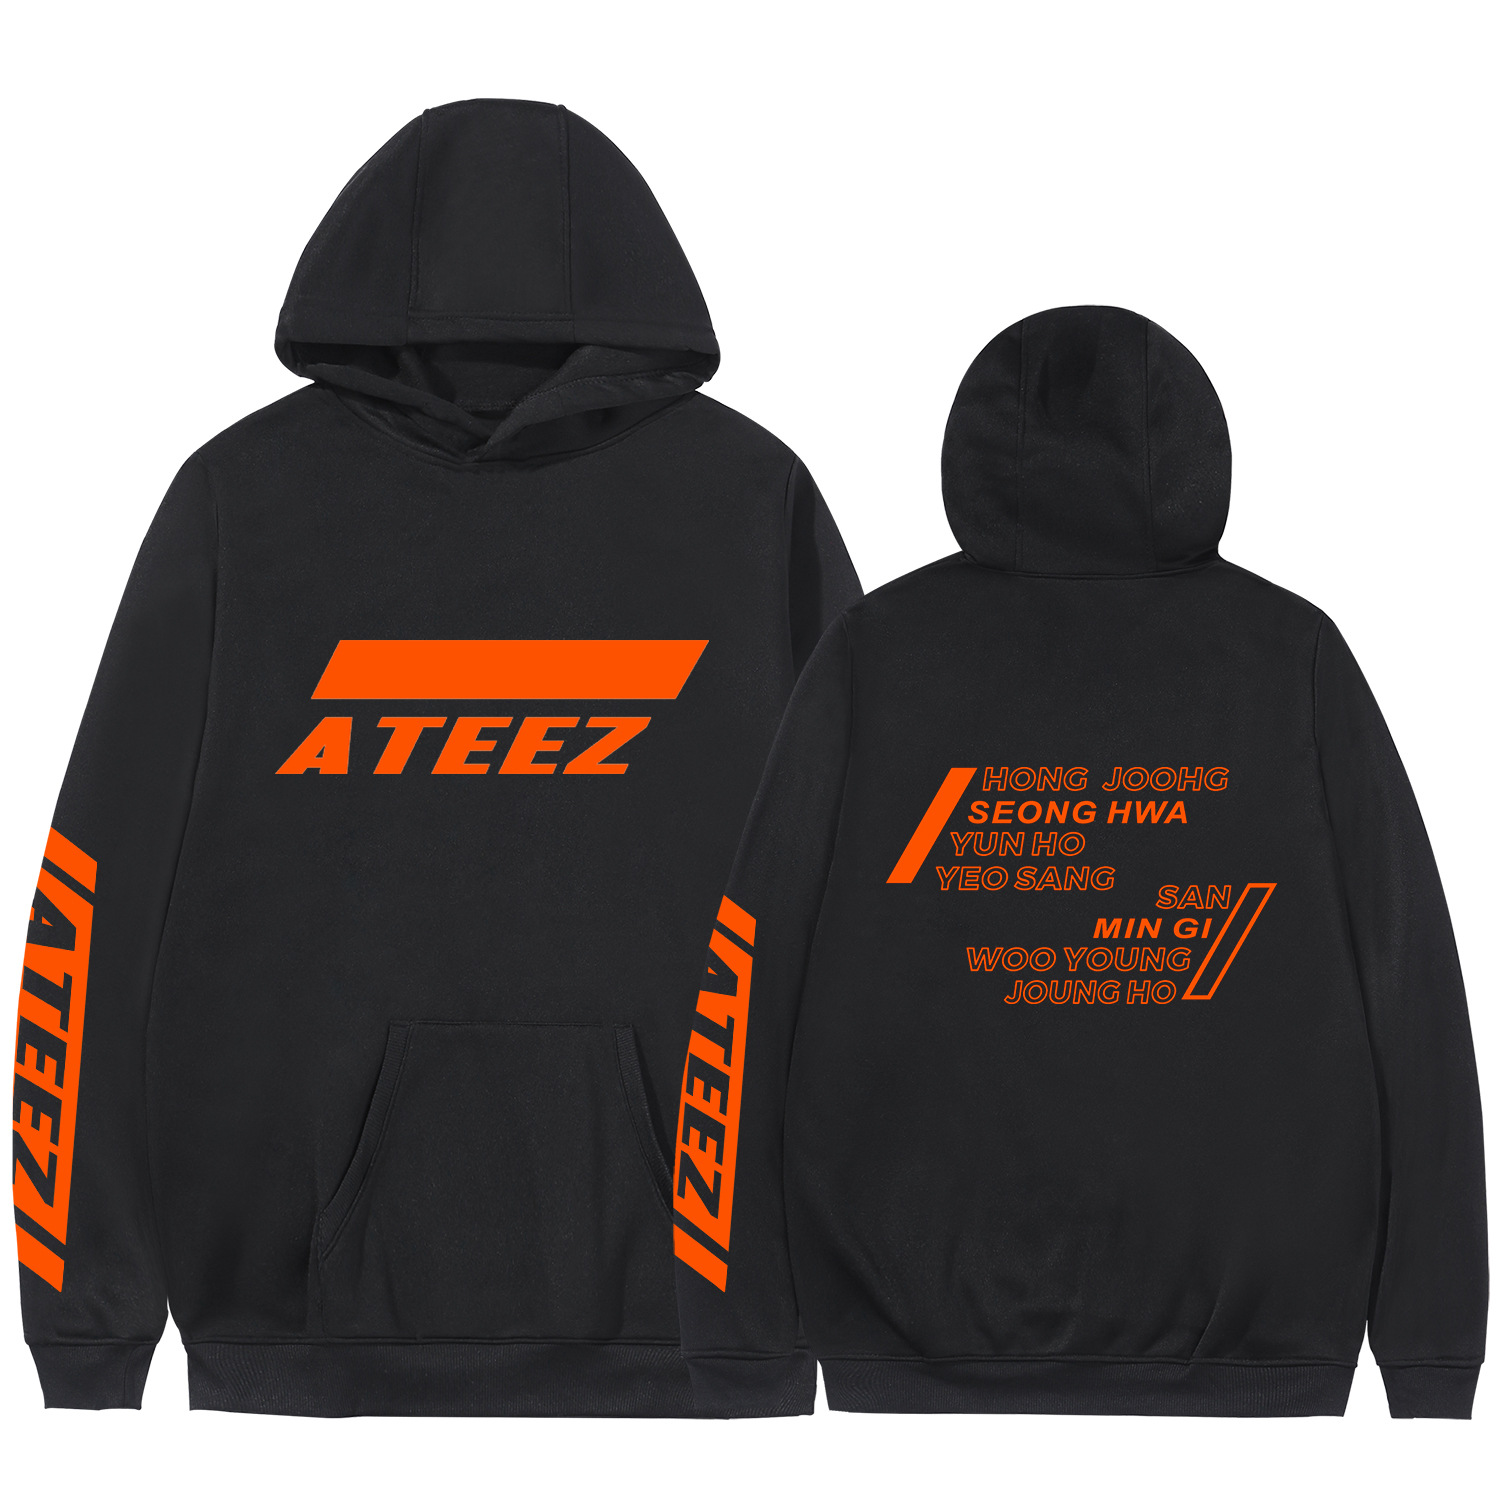 Ateez South Korea Cutting-Edge Combination Europe And America Fashion Hooded Sweater Overstock